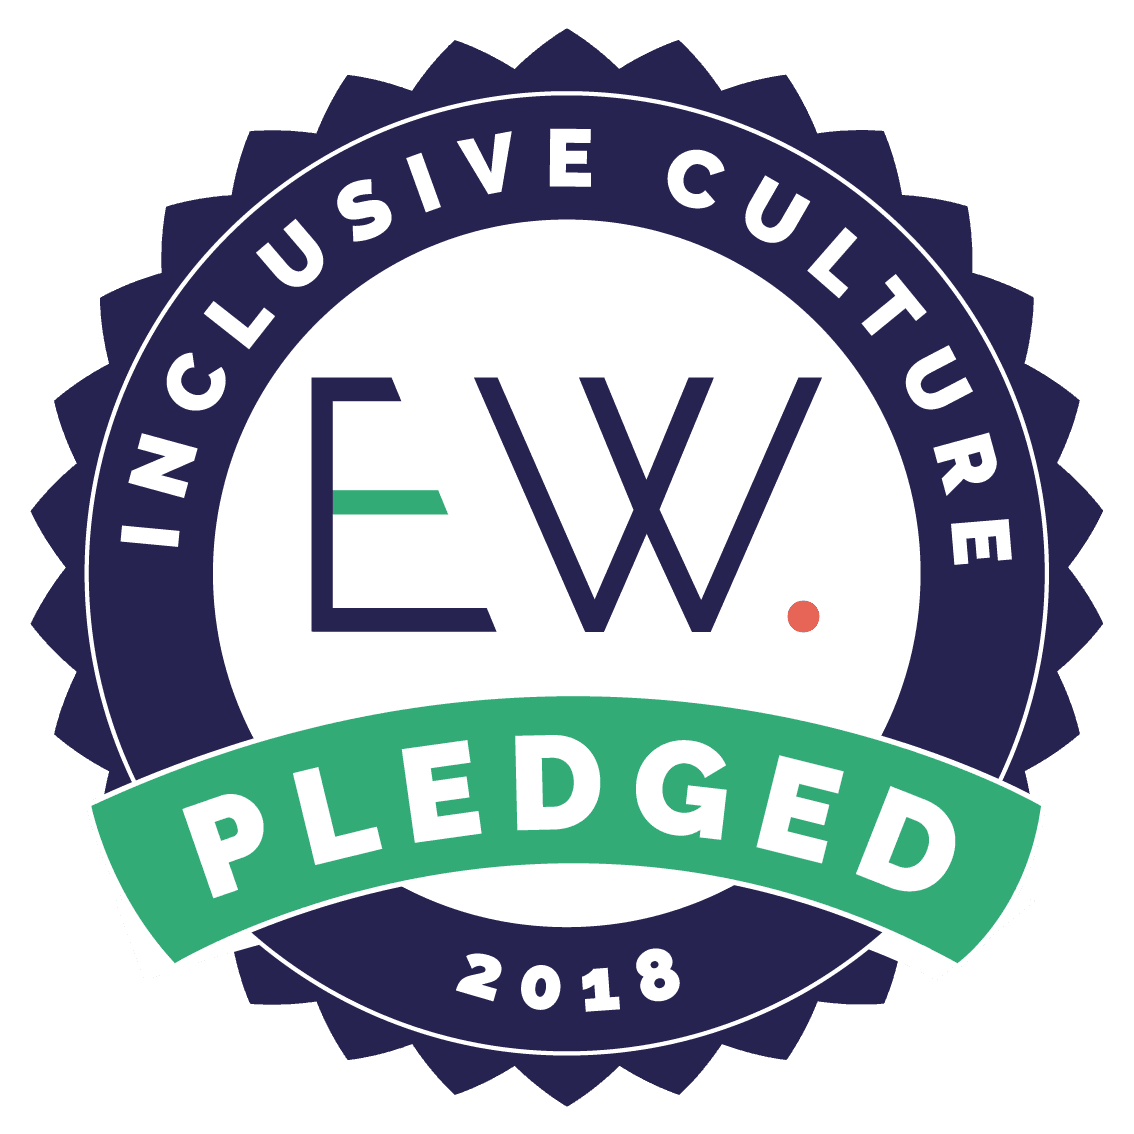 ew-group-inclusive-culture-pledged-2018